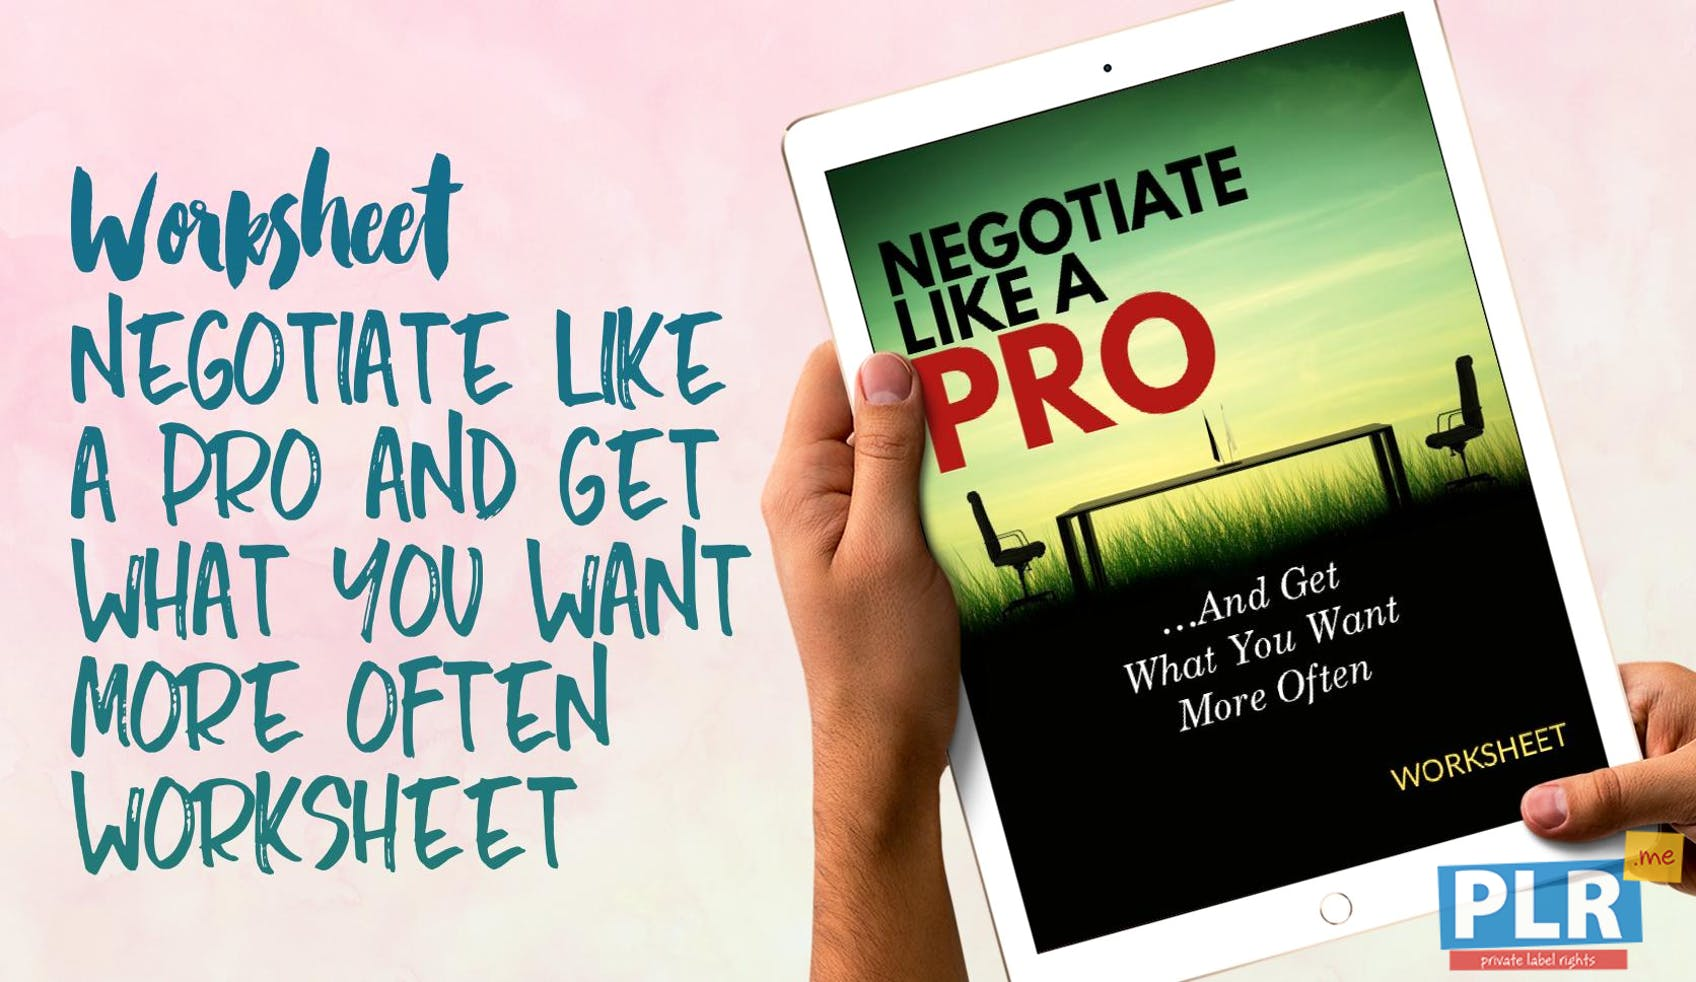 Negotiate Like A Pro And Get What You Want More Often Worksheet